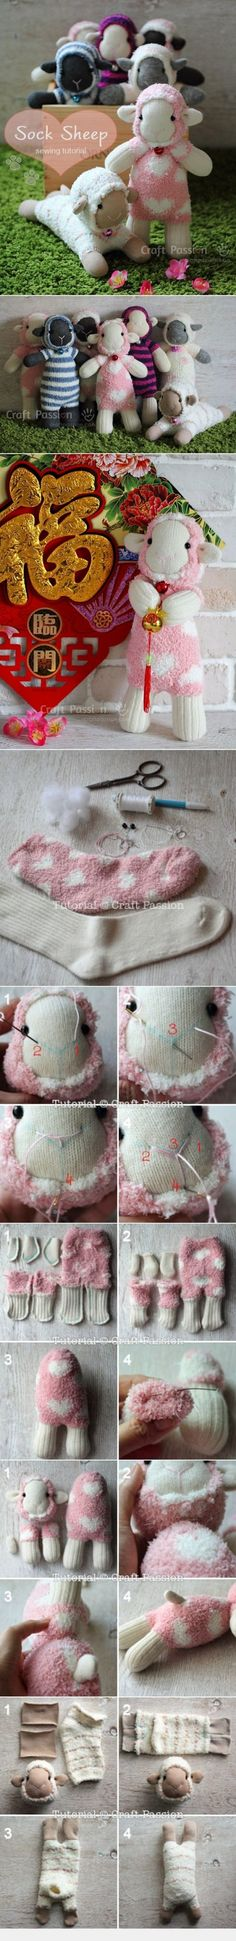 DIY Sew Sock Sheep